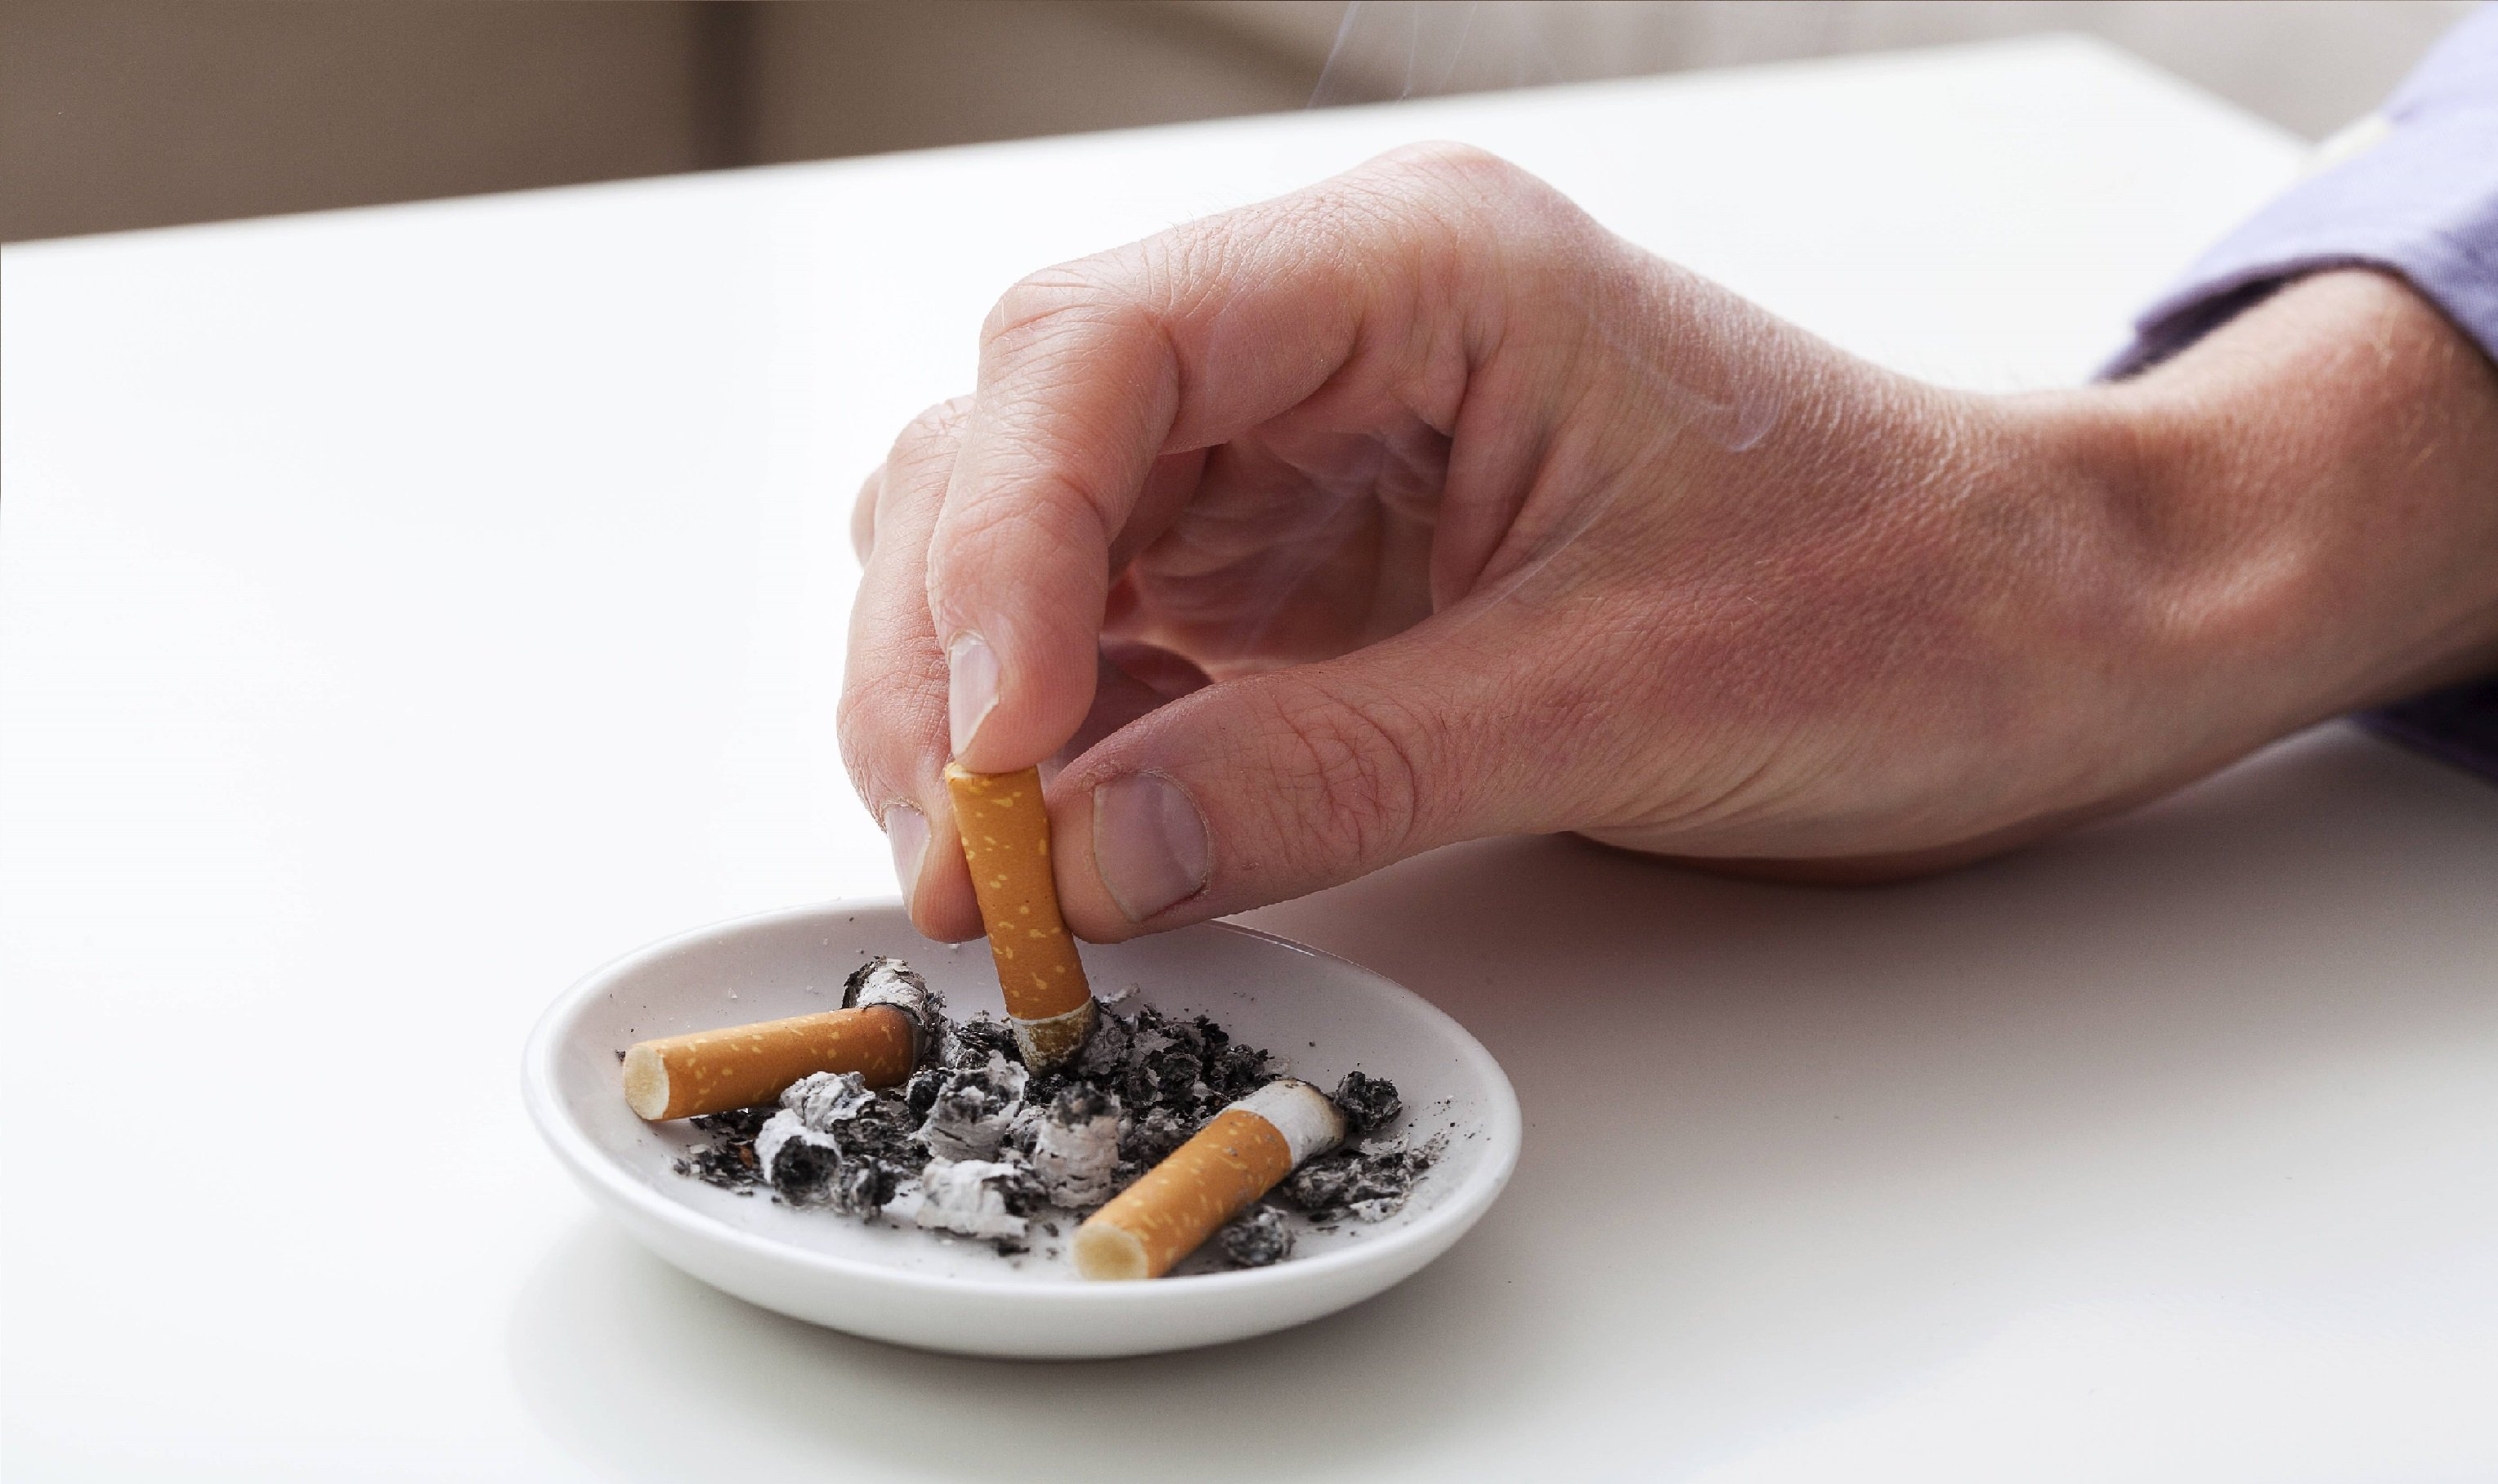 What You Need to Know About Smoking and Health Insurance